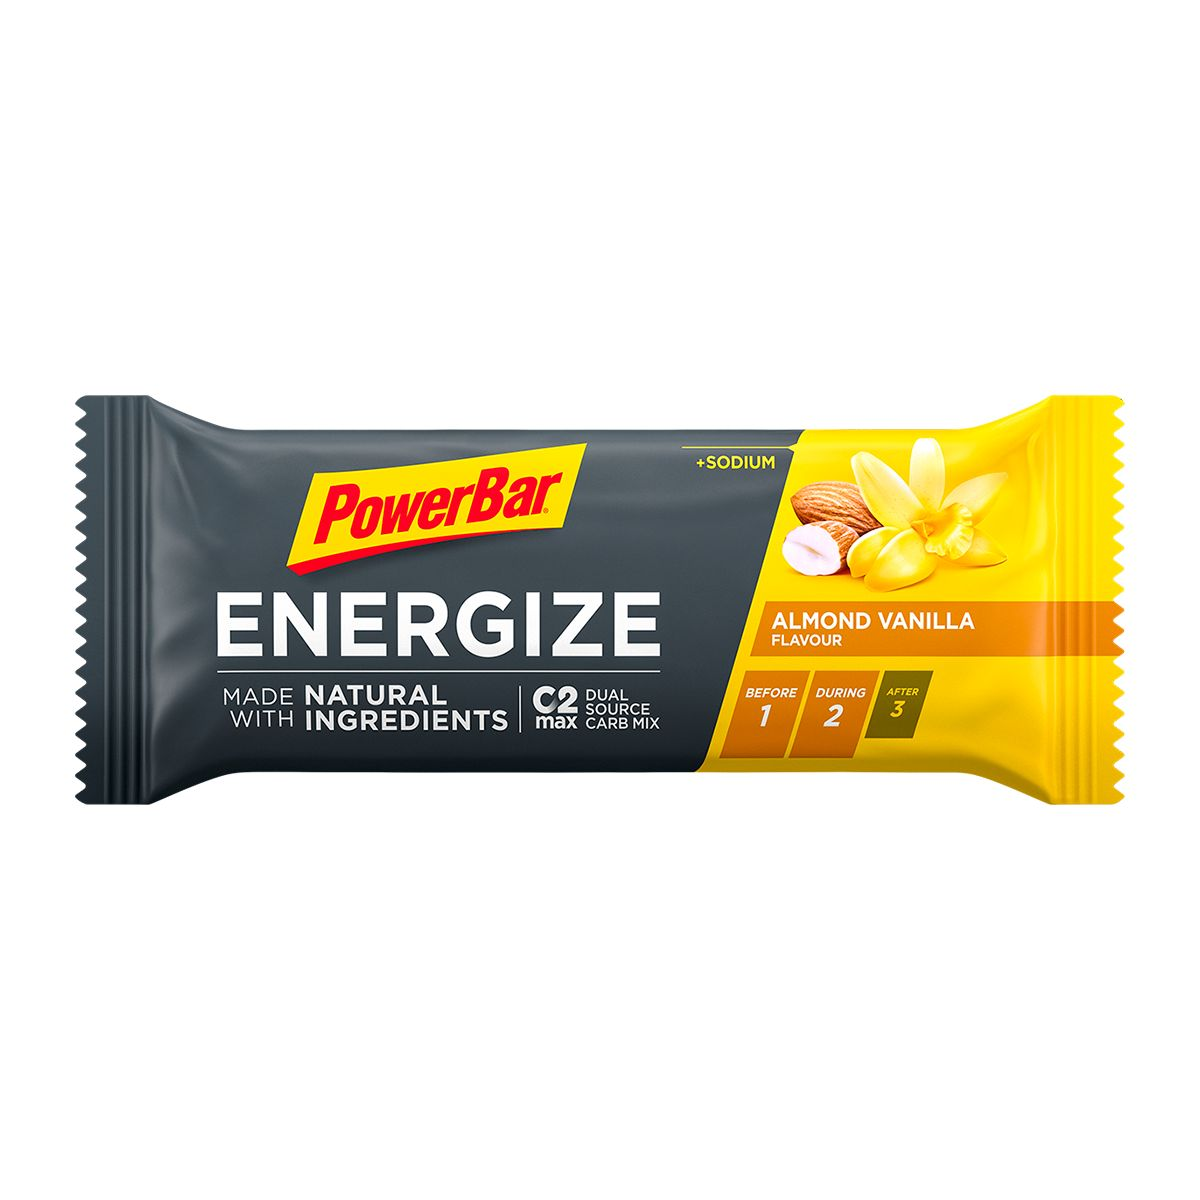 New Energize Riegel